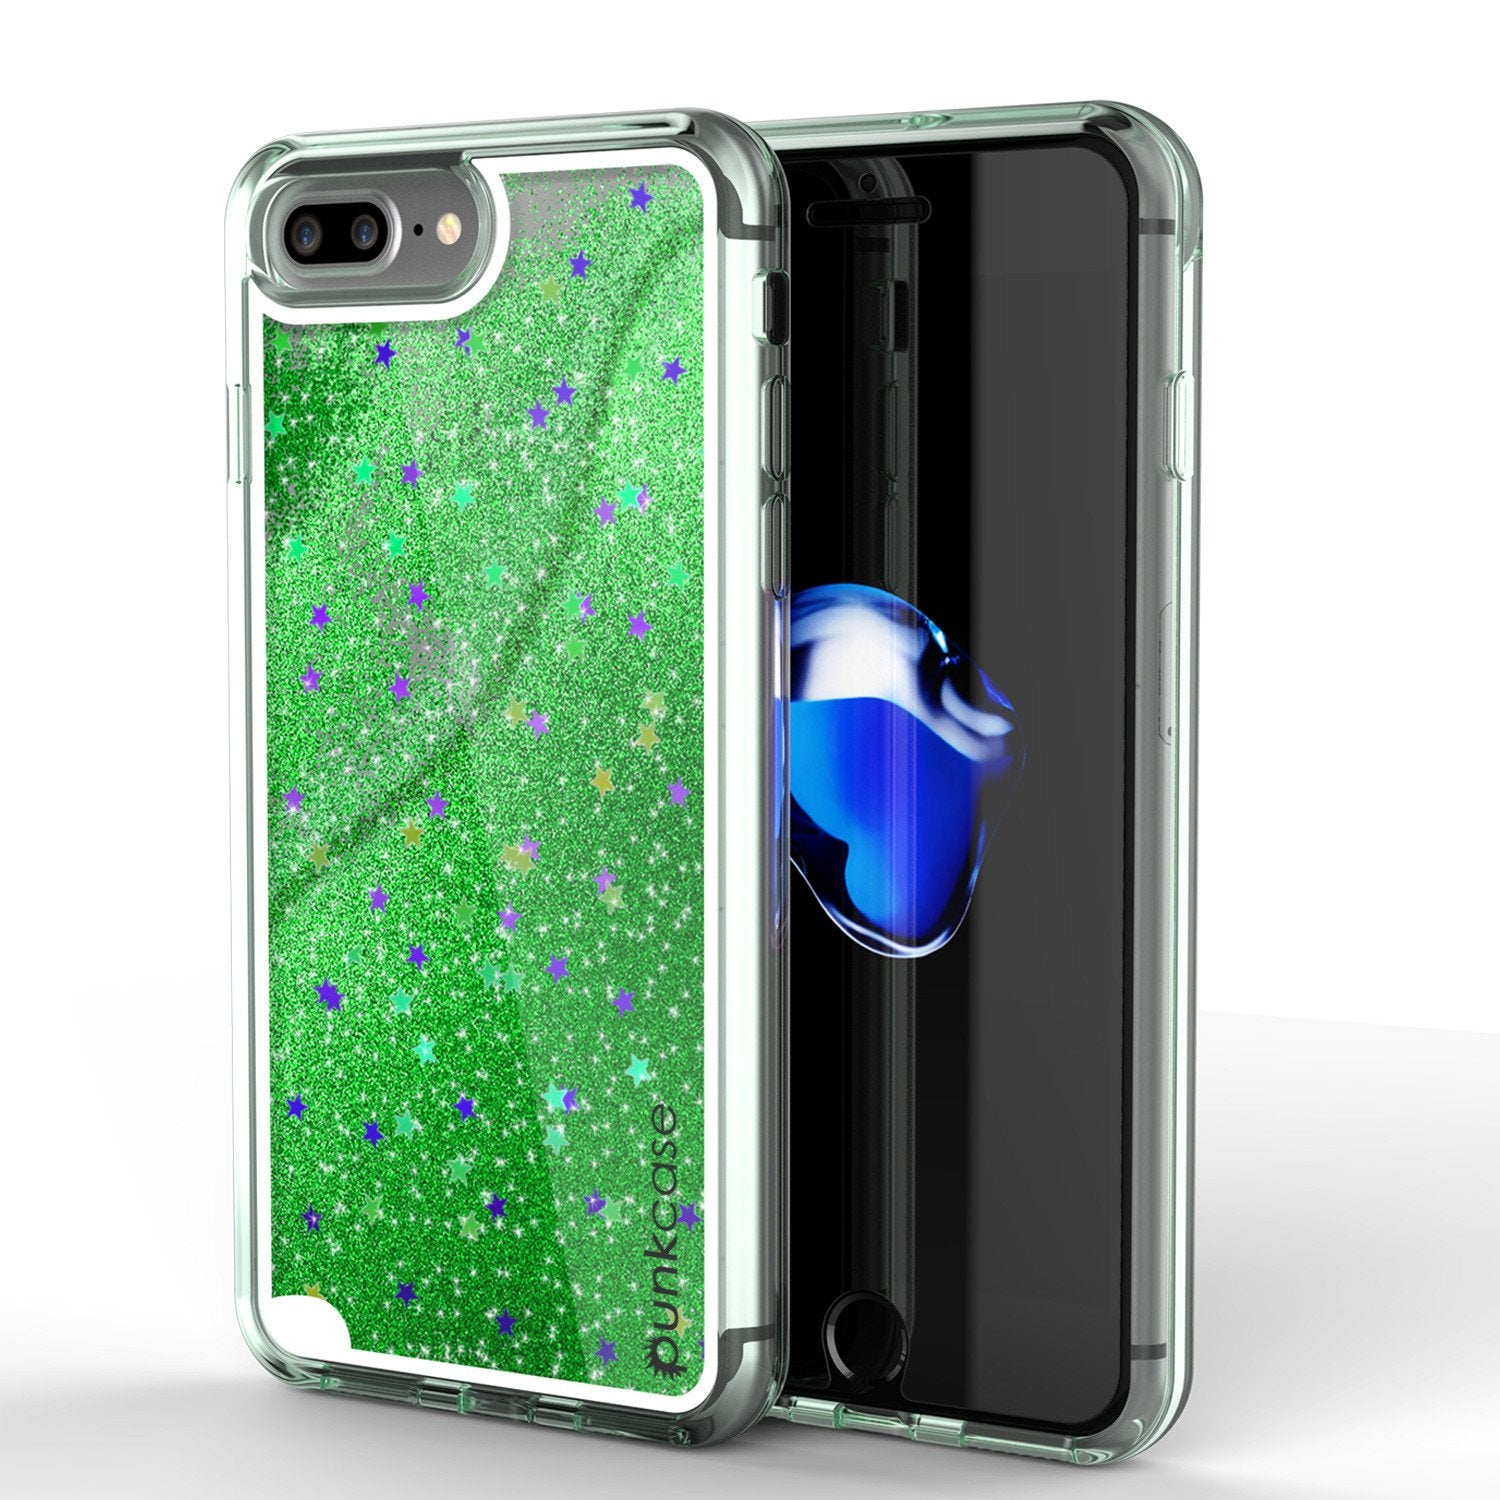 iPhone 7 Plus Case, PunkCase LIQUID Green Series, Protective Dual Layer Floating Glitter Cover